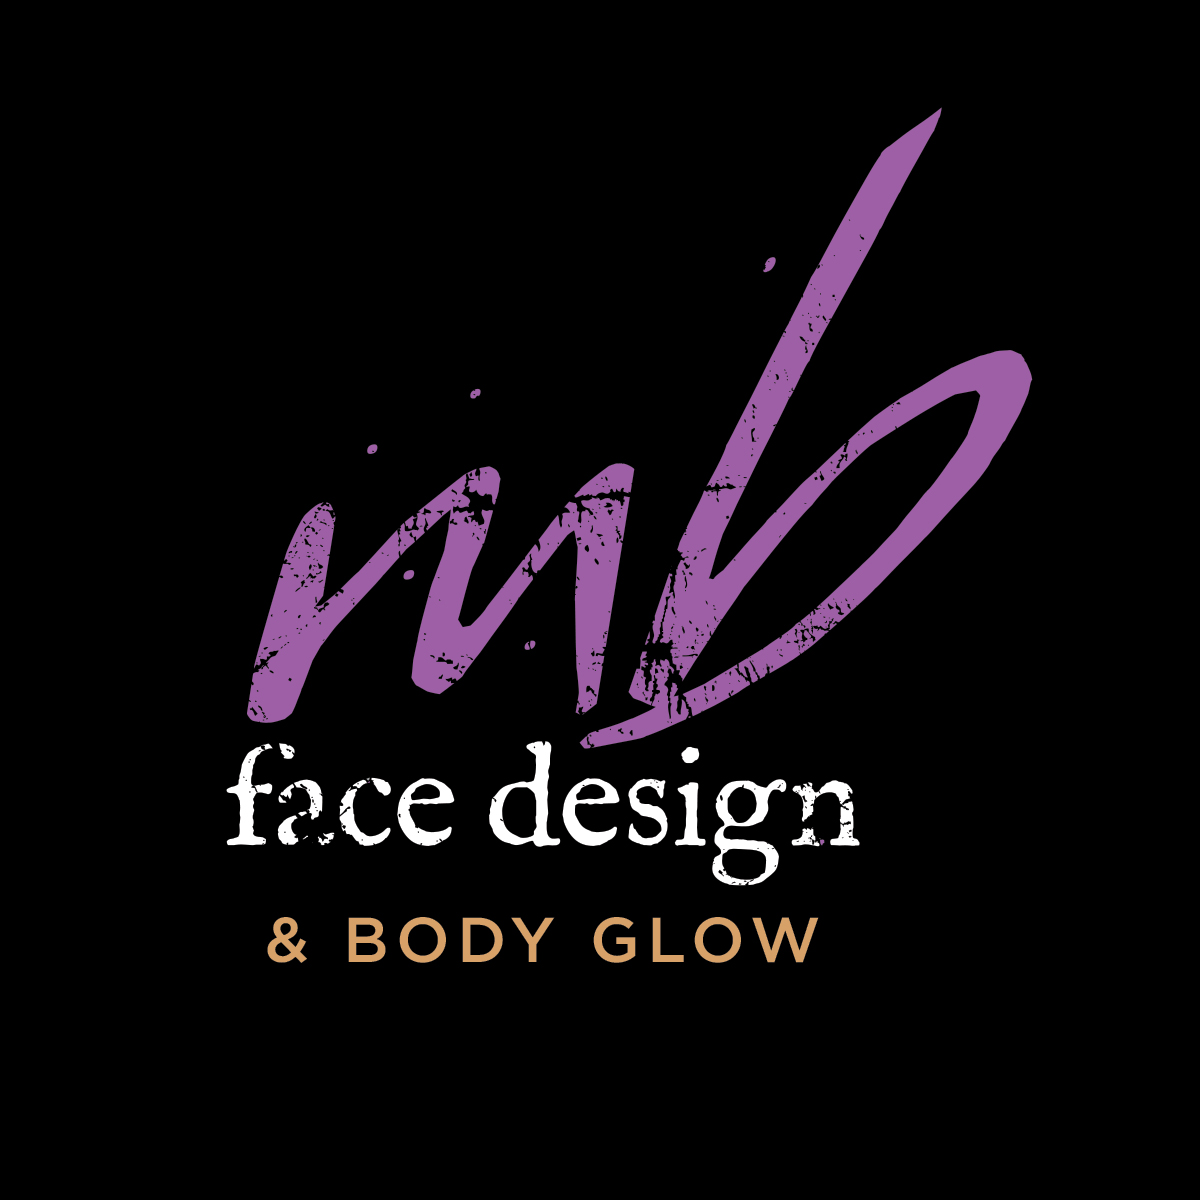 MB FACE DESIGN